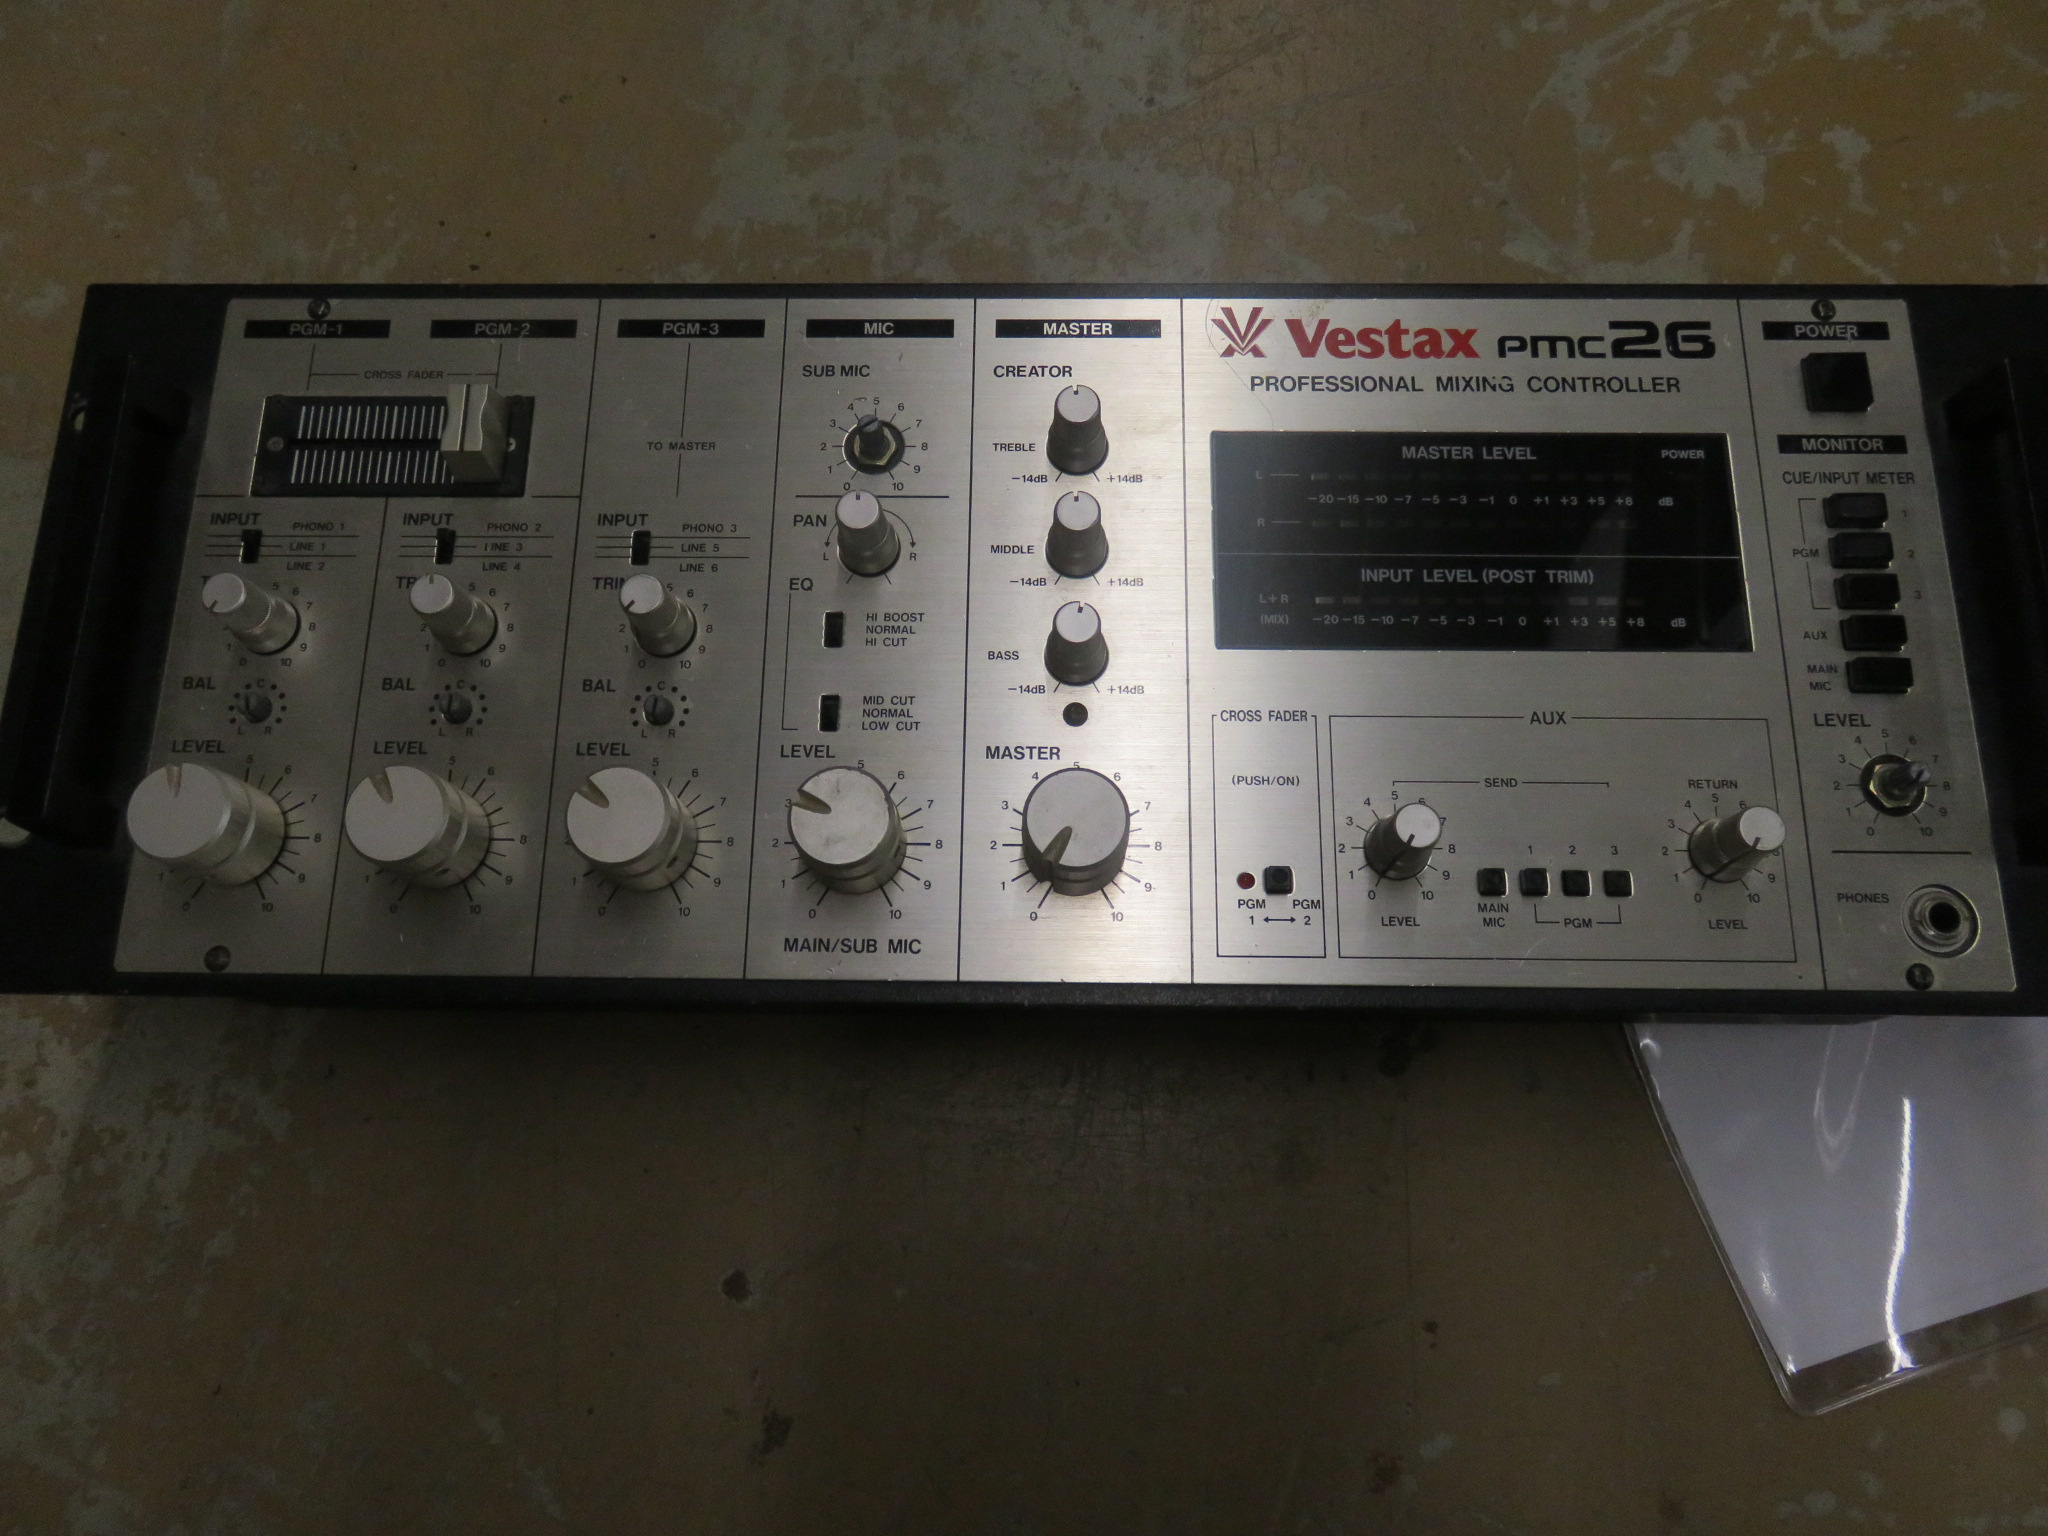 Vestax - PMC26 Pro Mixing Console